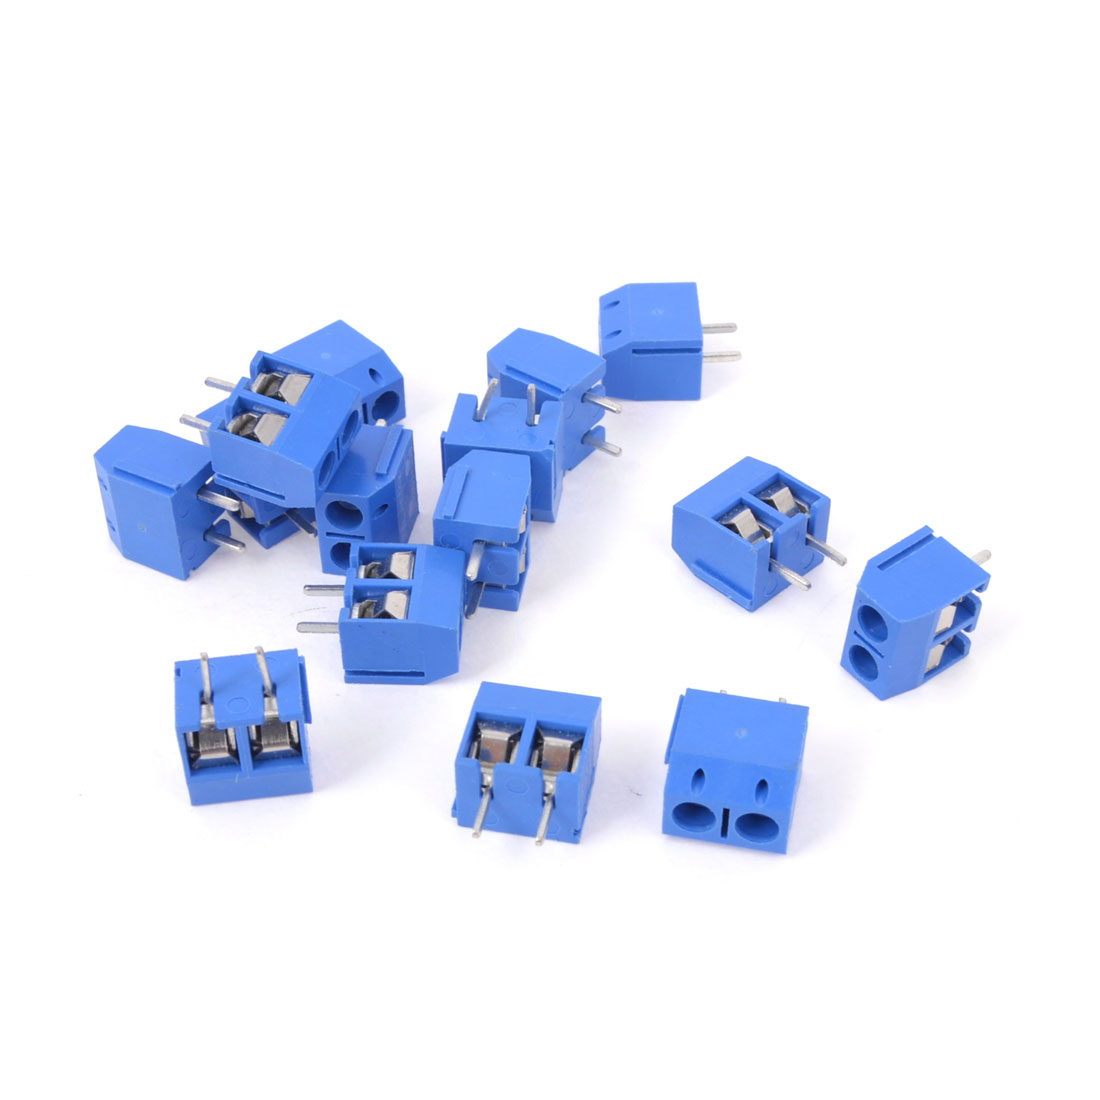 15 Pcs AC 300V 16A Male PCB Screw Terminal Block Connector 5mm Pitch Blue